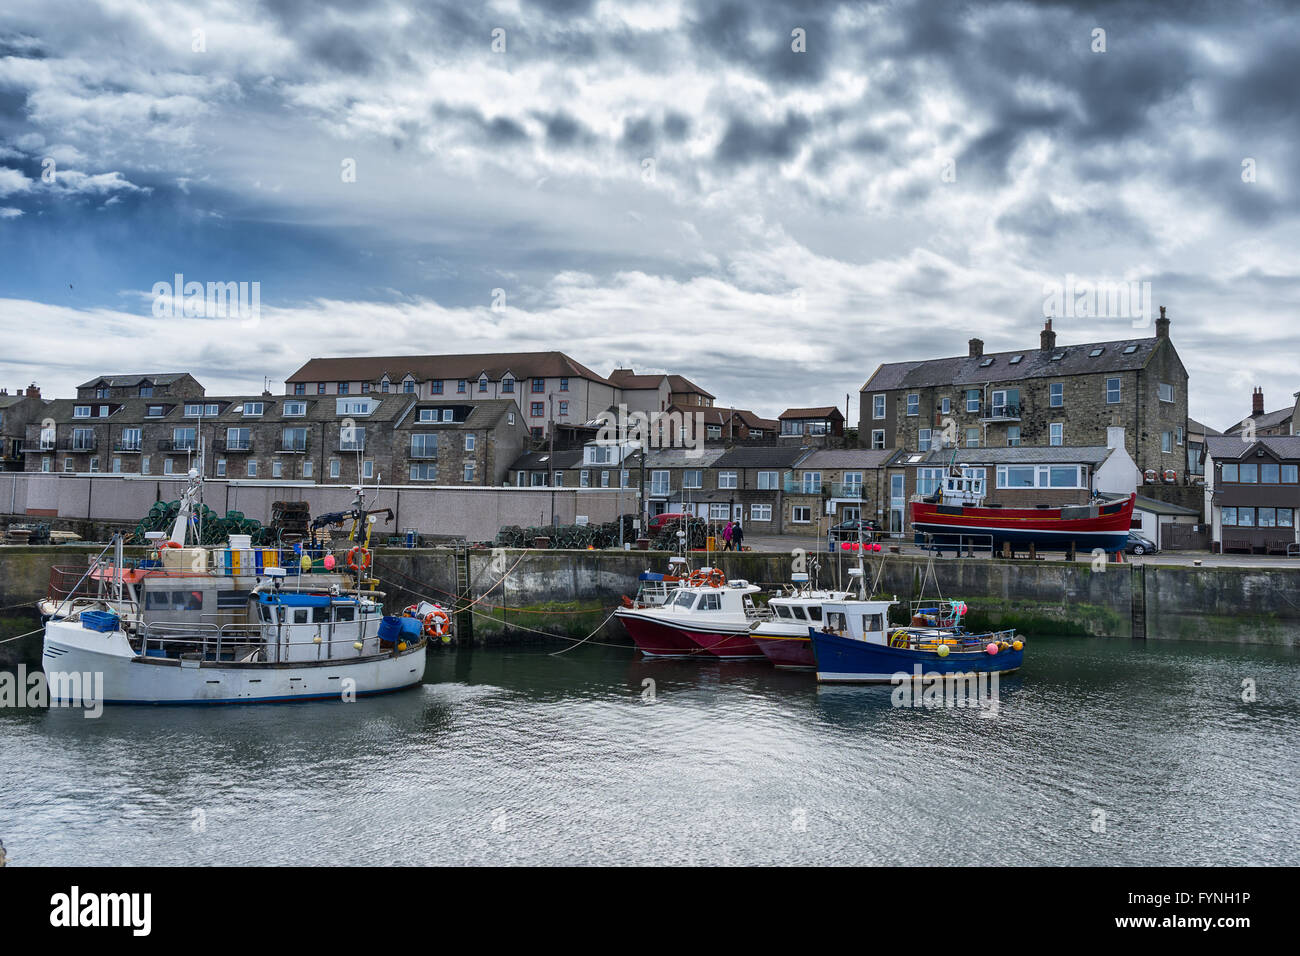 Seahouses a small fishing port on the Northumbrian coast - Stock Image